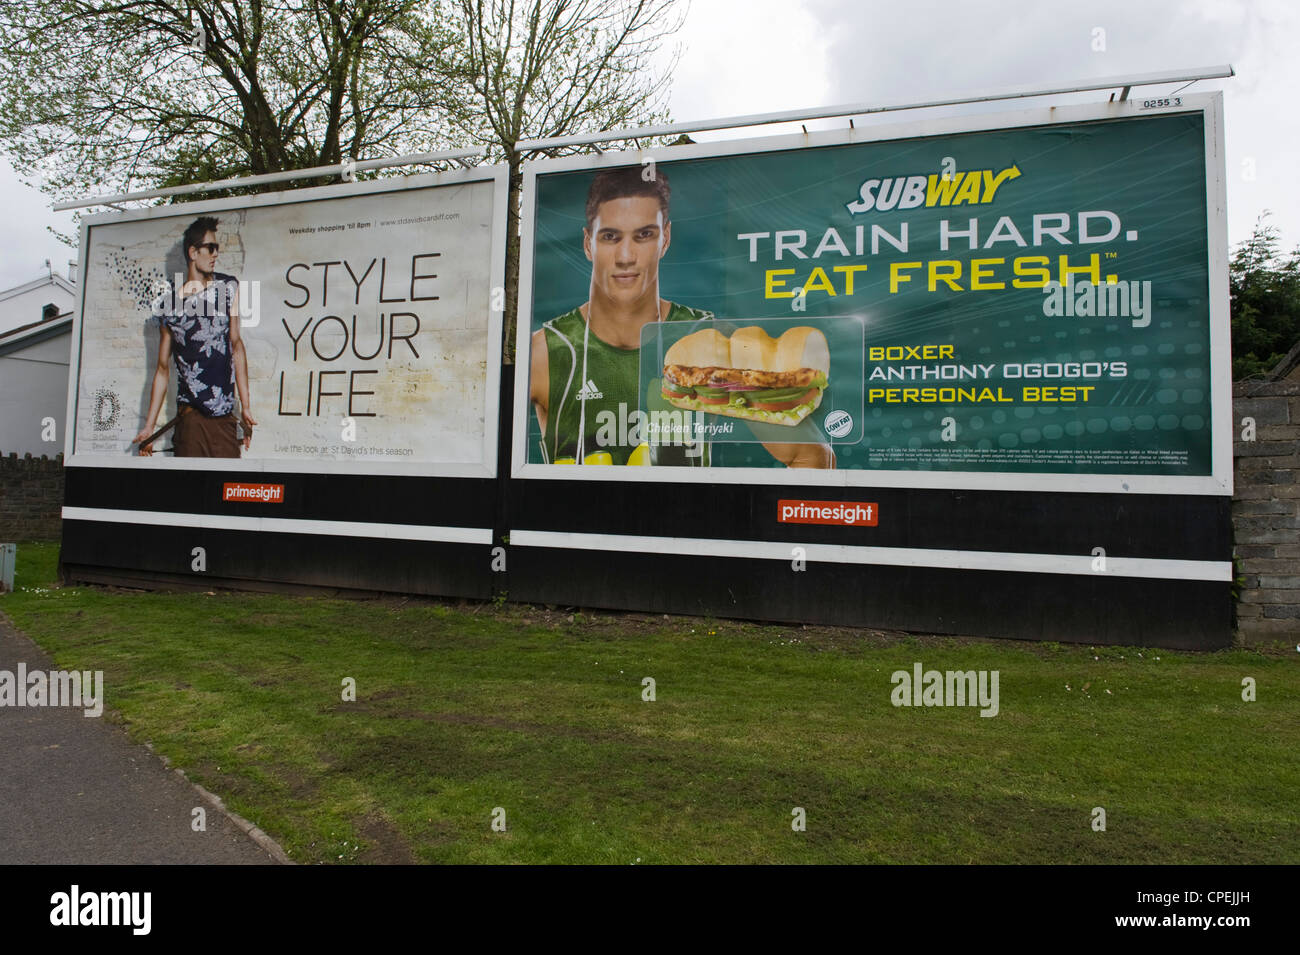 primesight billboard advertising site in Merthyr Tydfil South Wales UK for St David's shopping centre Cardiff - Stock Image